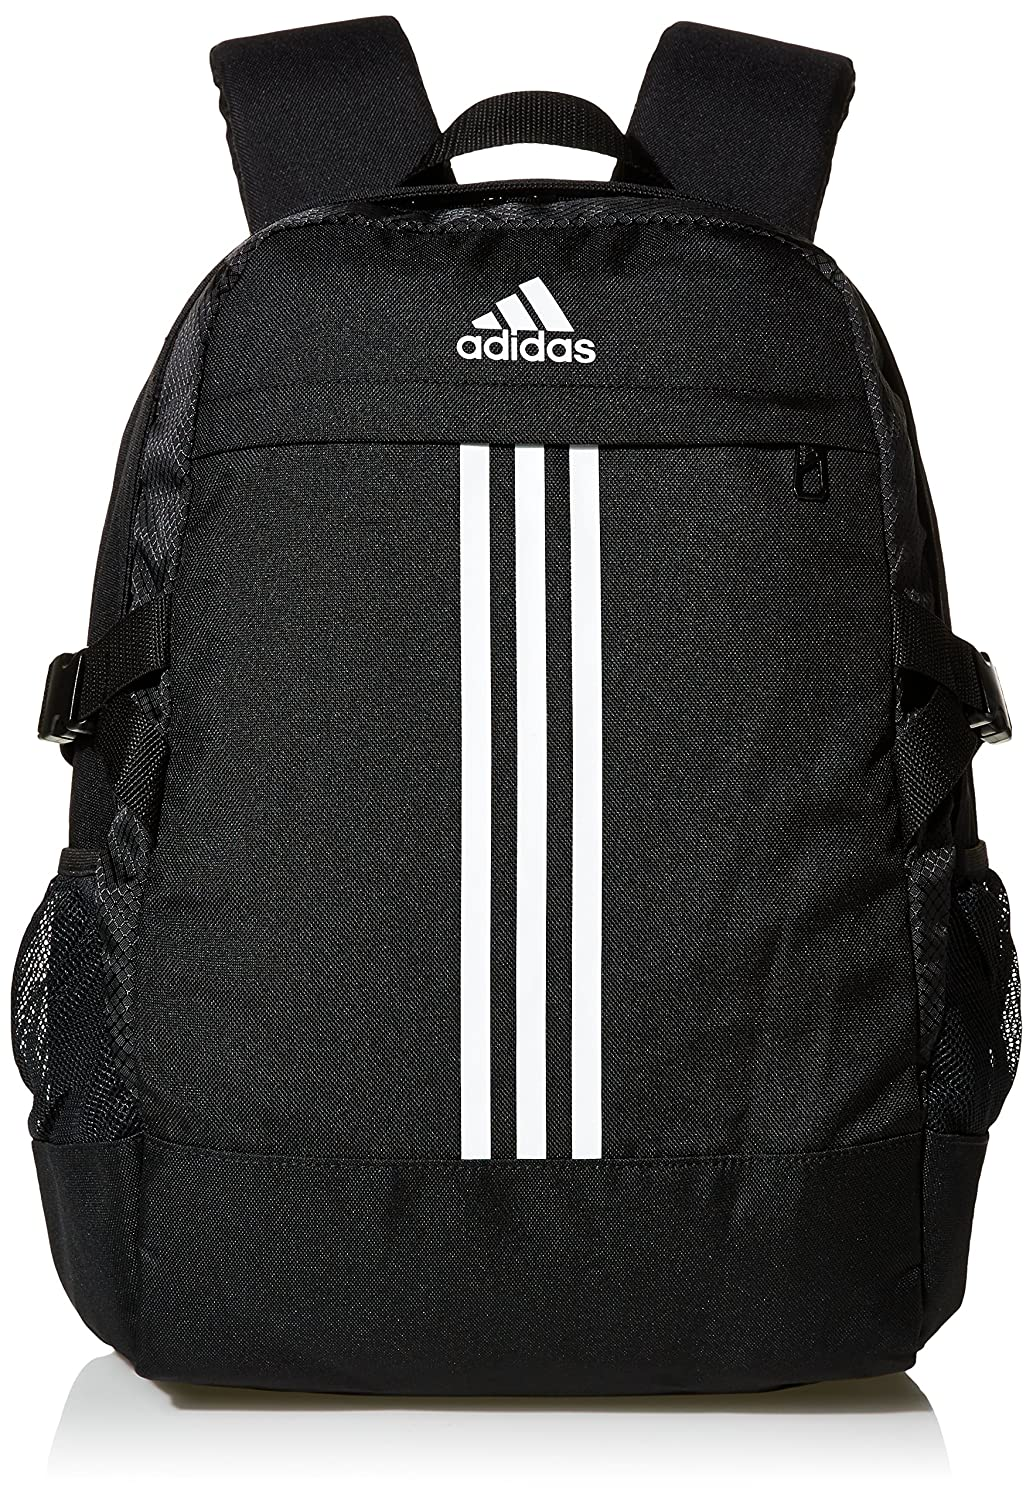 8ef026cbf883 Adidas Mesh Backpack Black- Fenix Toulouse Handball